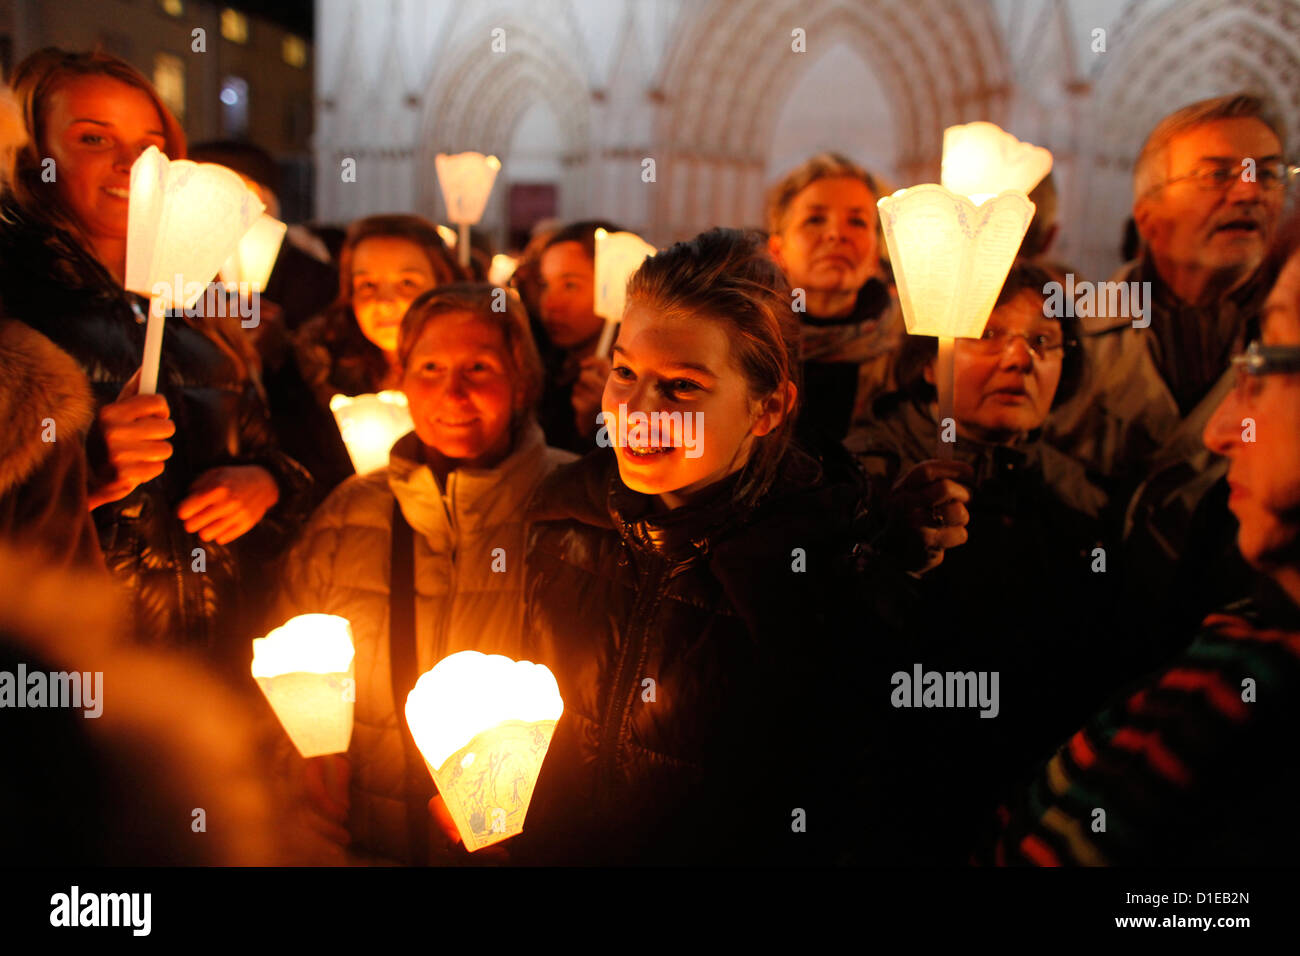 Fete des Lumieres, a night procession from St. John's cathedral to Fourviere Basilica, Lyon, Rhone, France - Stock Image